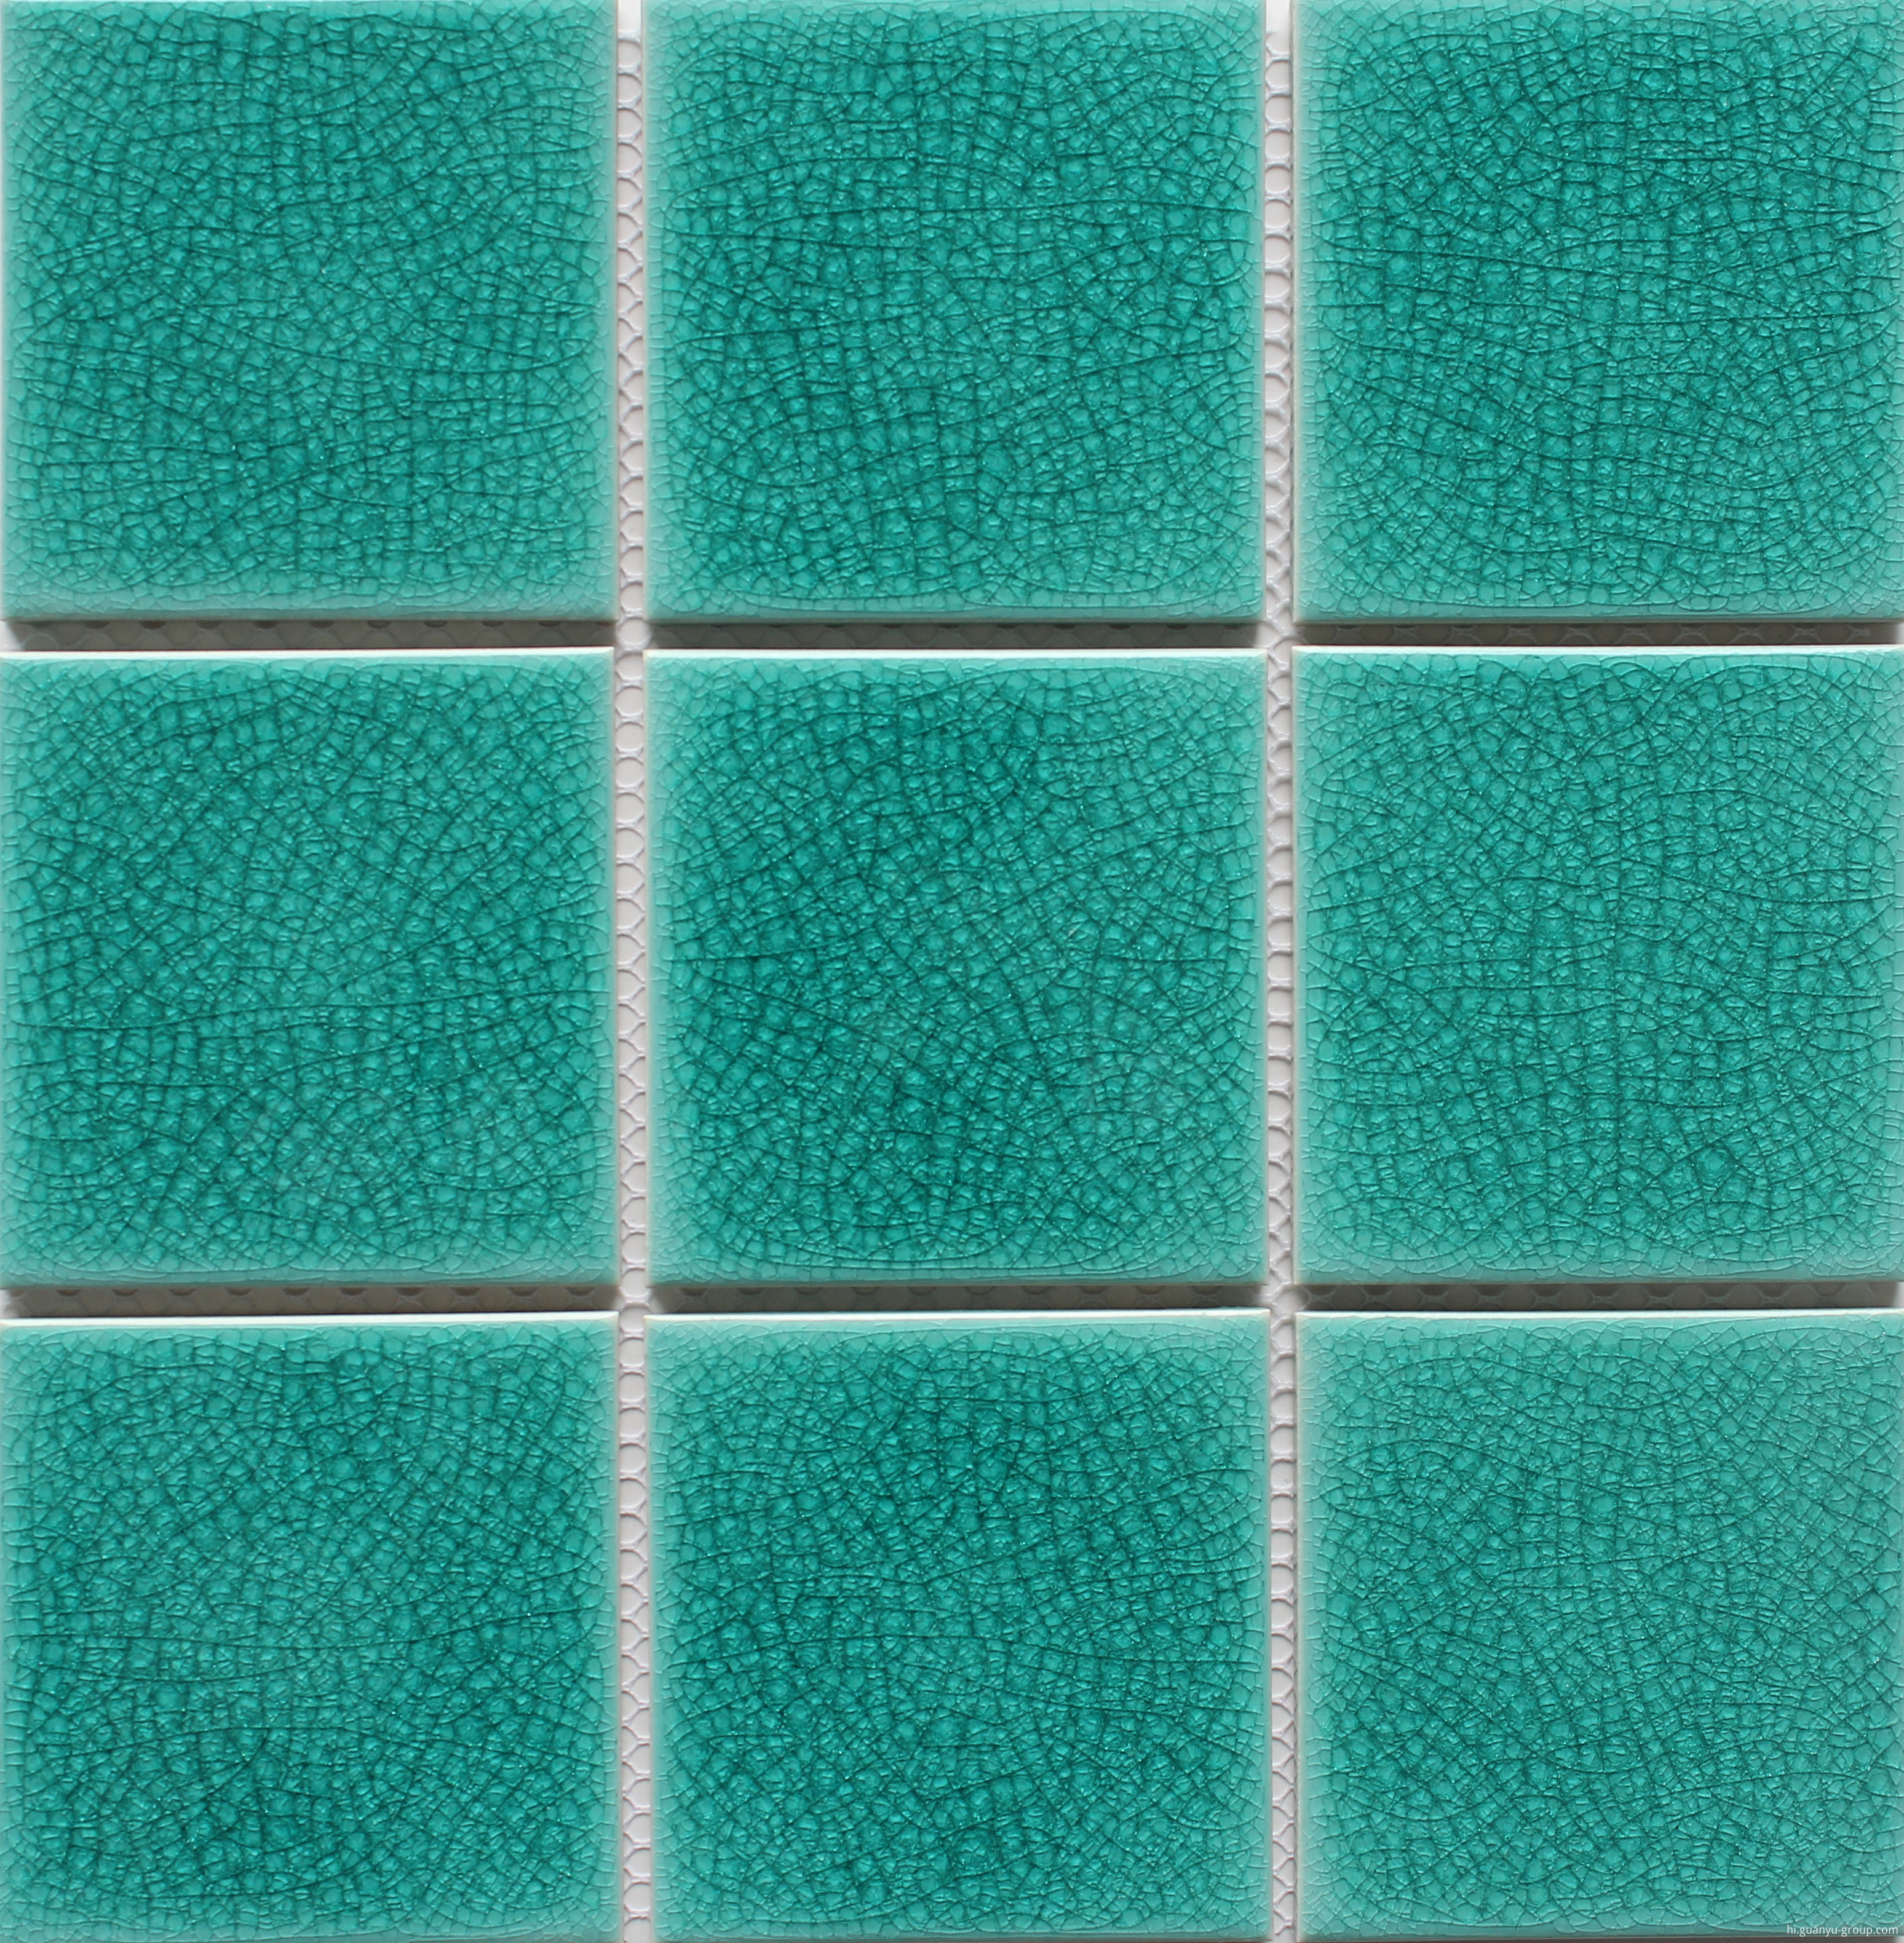 95x95 Swimming Pool Porcelain Mosaic